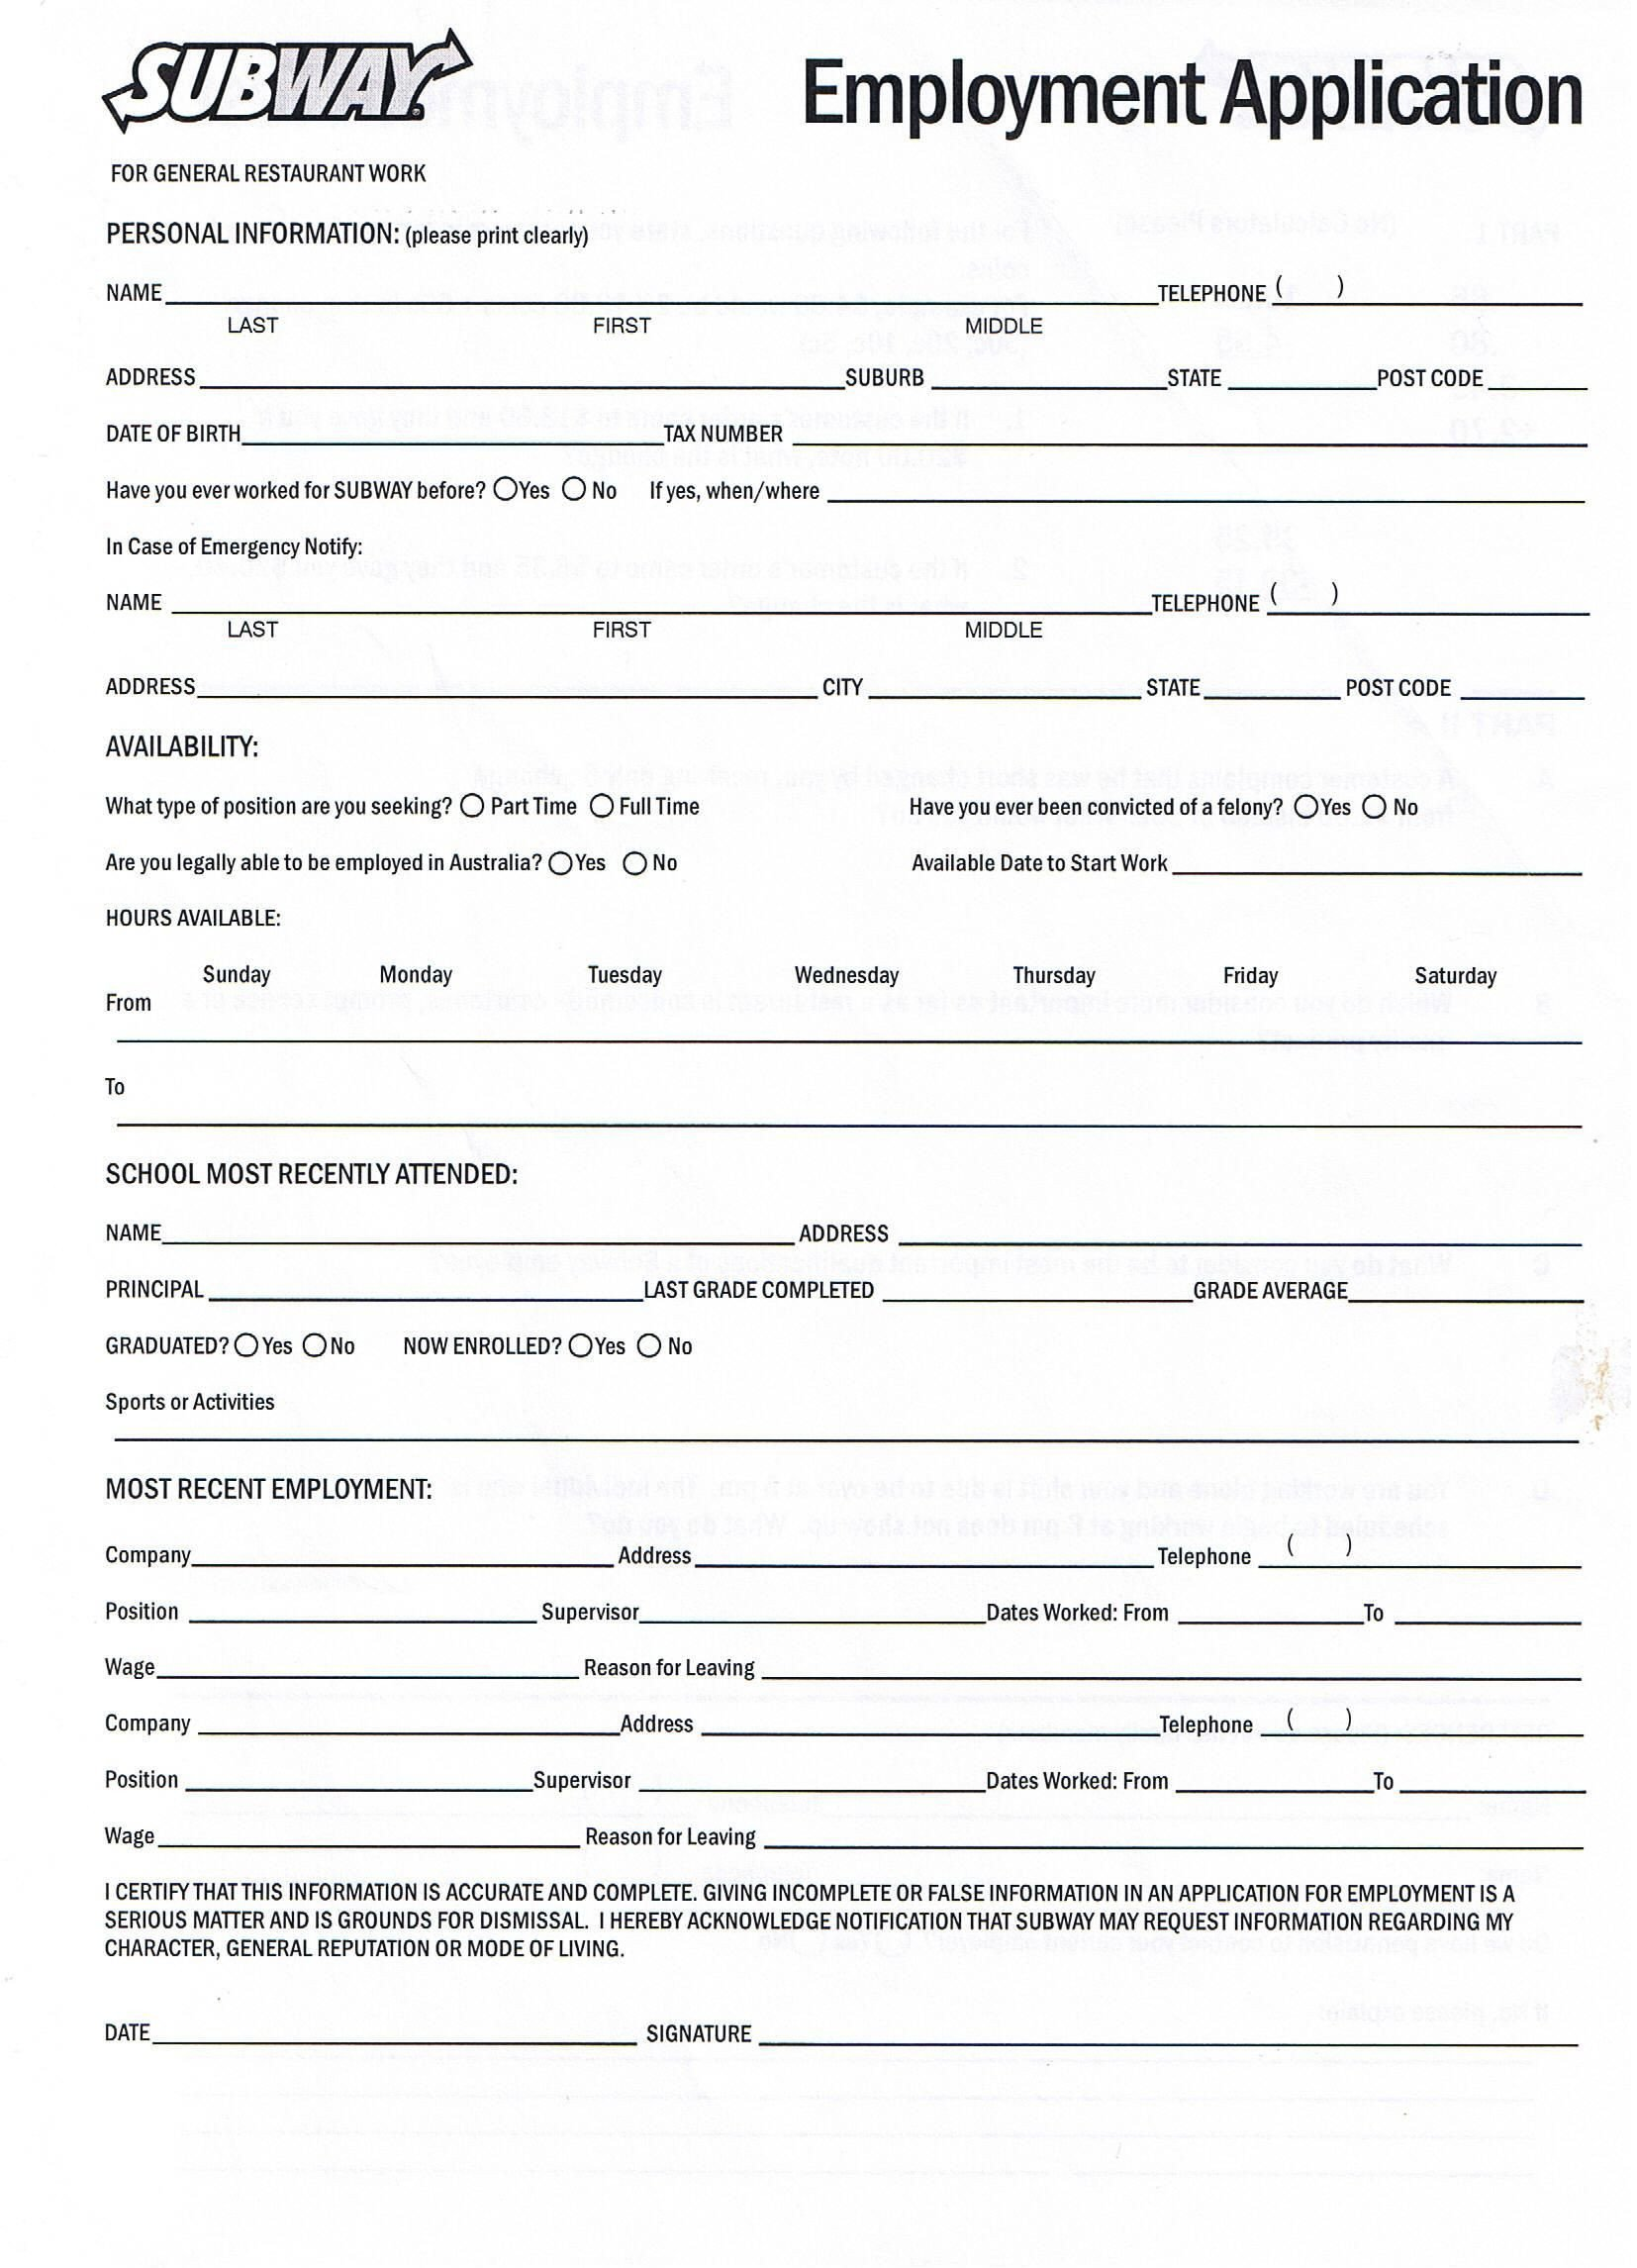 Blank Job Application Template Printable Job Application forms Online forms Download and